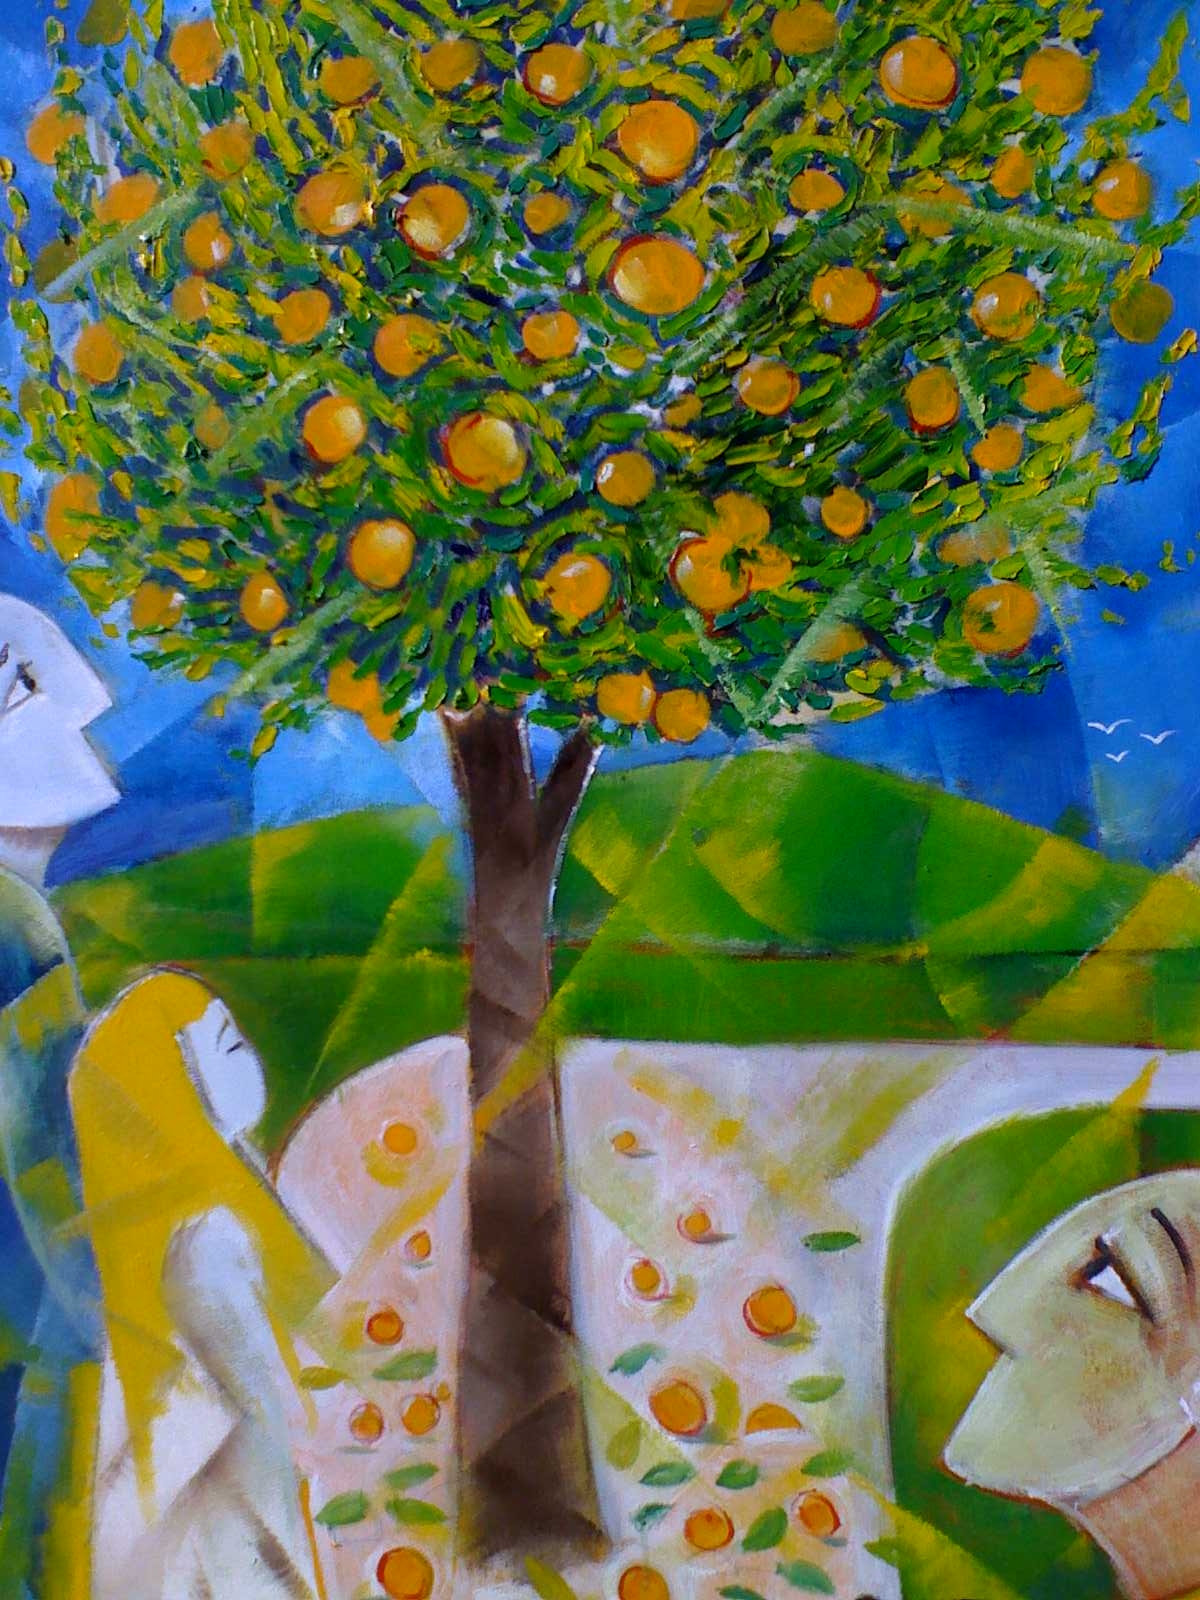 'The Orange Tree' 2006 Oil on Canvas 100x75cm